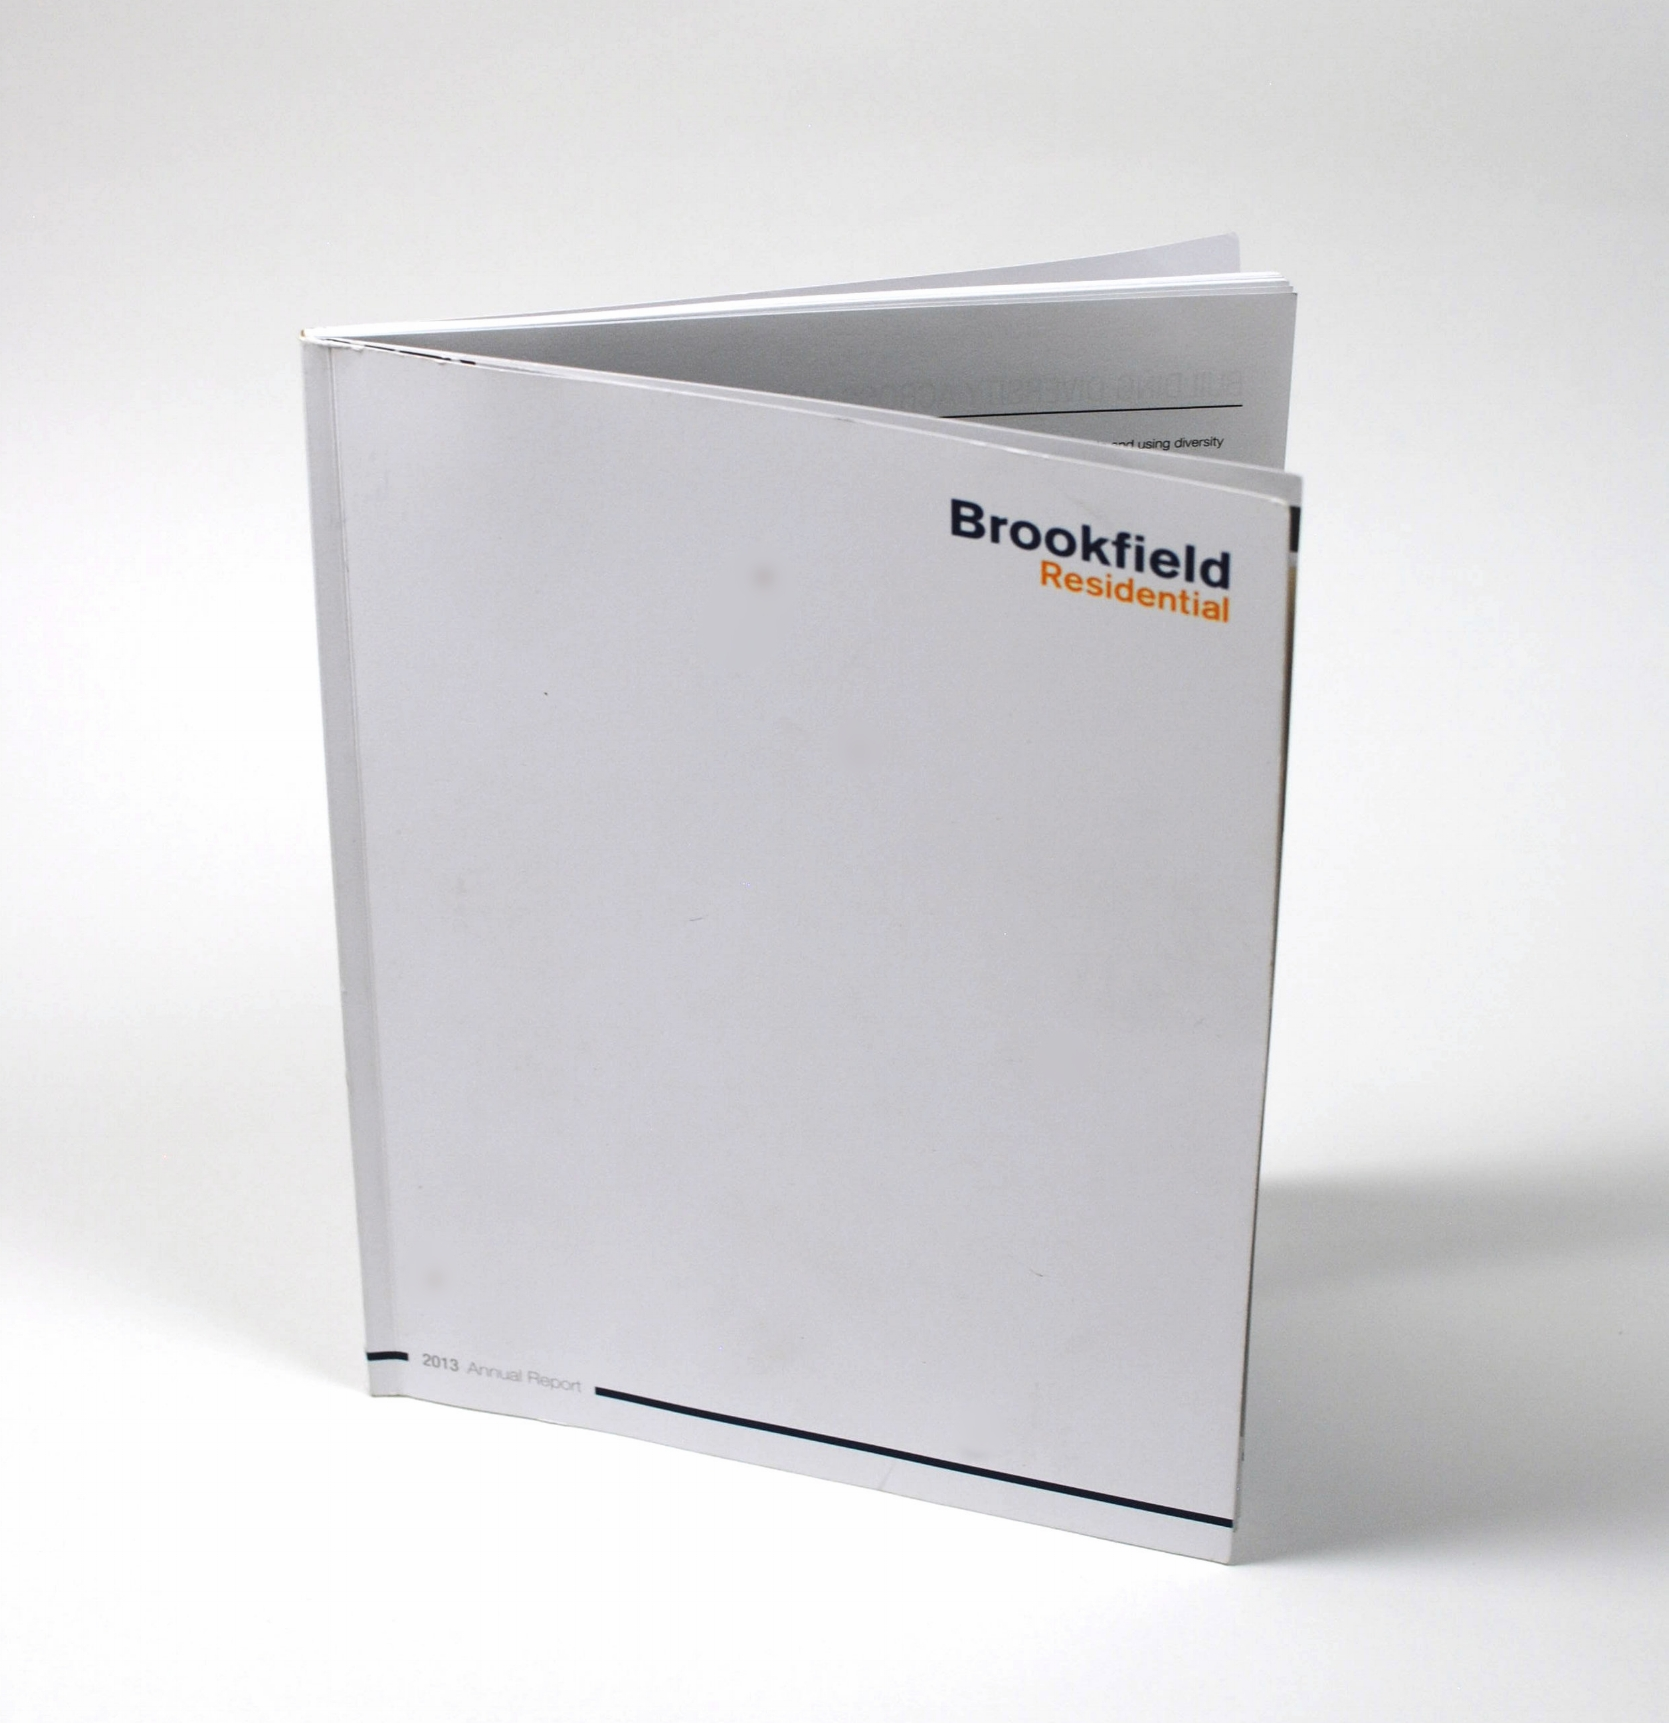 Brookfield Residential 2013 Annual Report